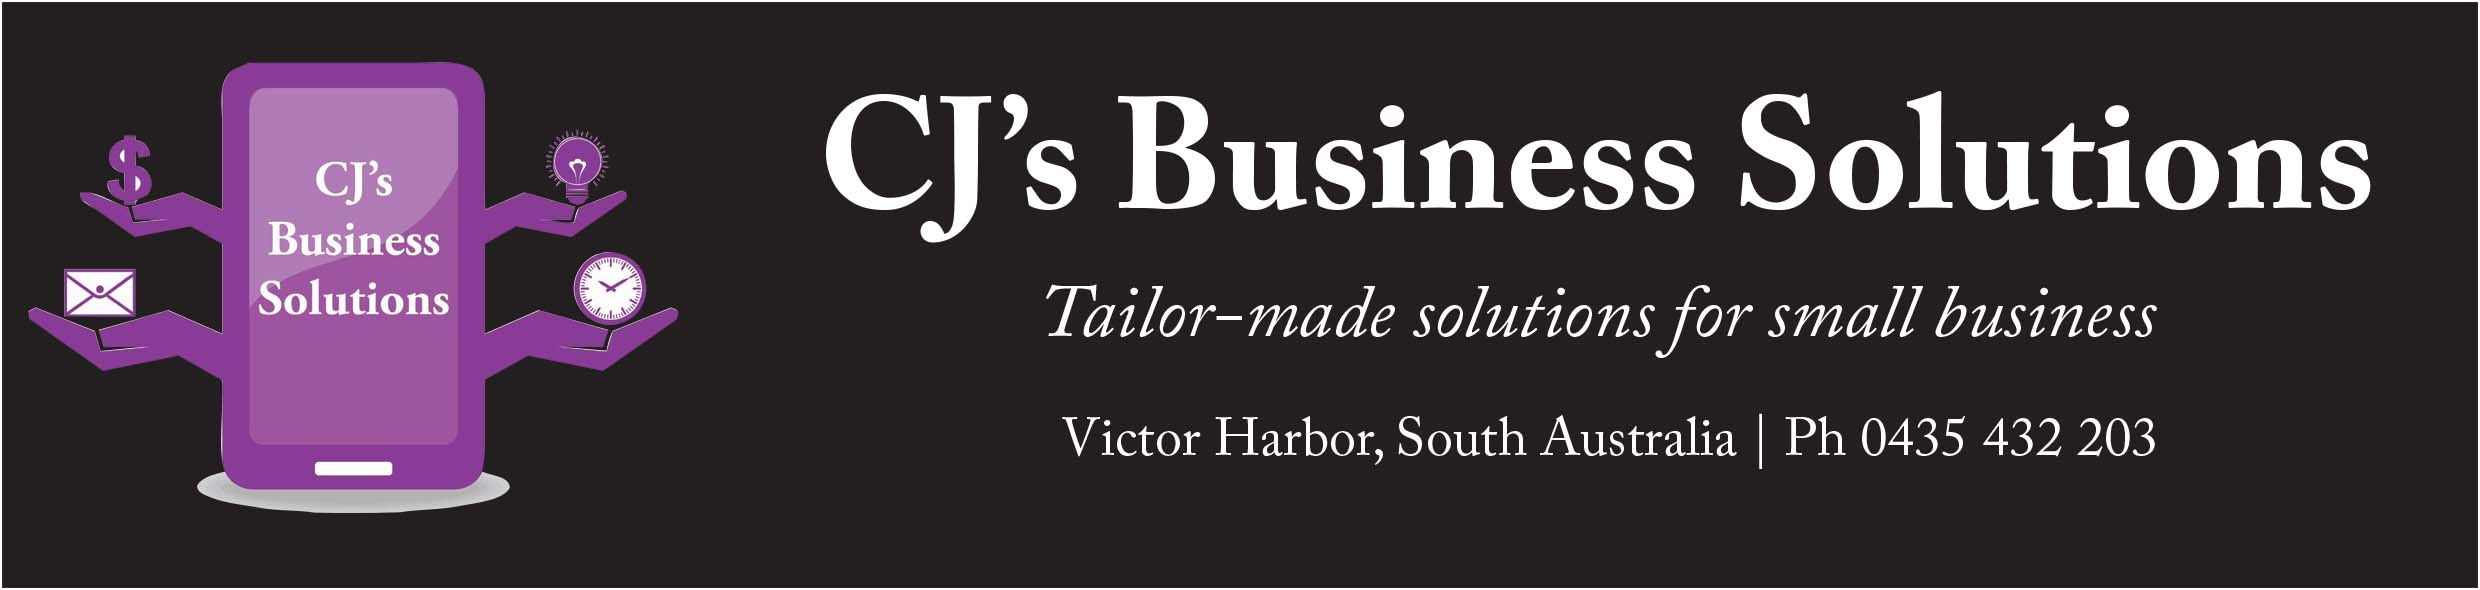 CJ's Business Solutions